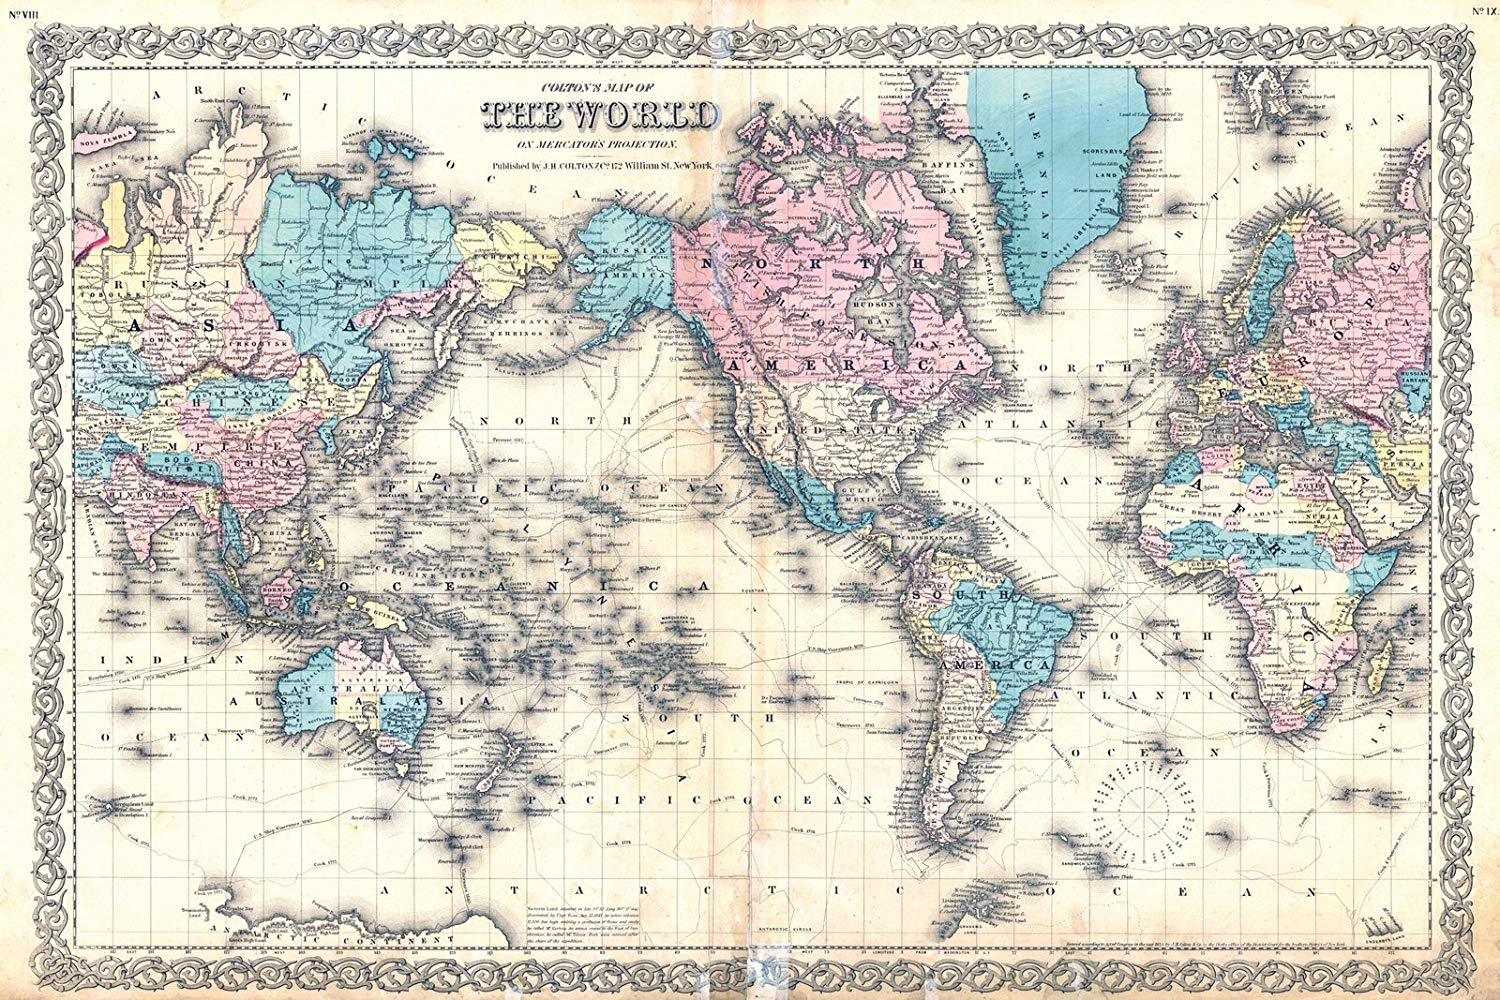 Historic Map   1855 Colton's Map of the World on Mercator's Projection   Colton, Joseph Hutchins